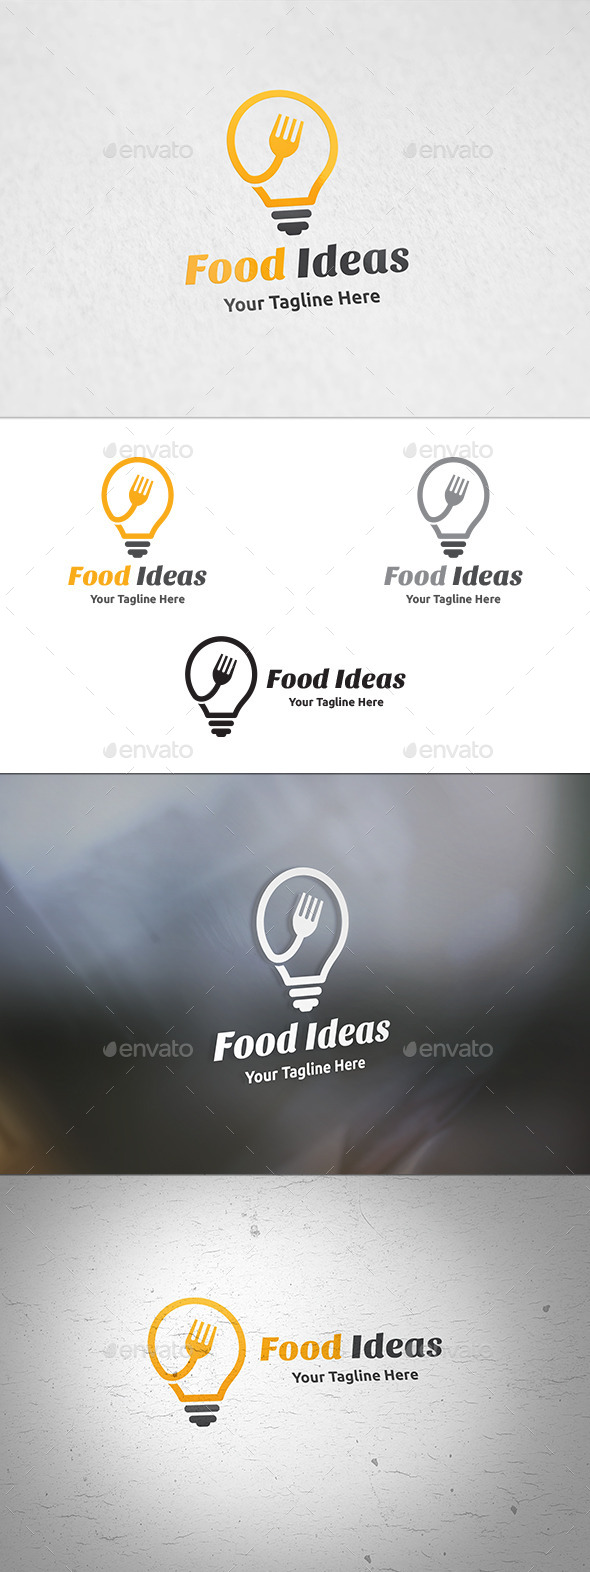 Food Ideas Logo